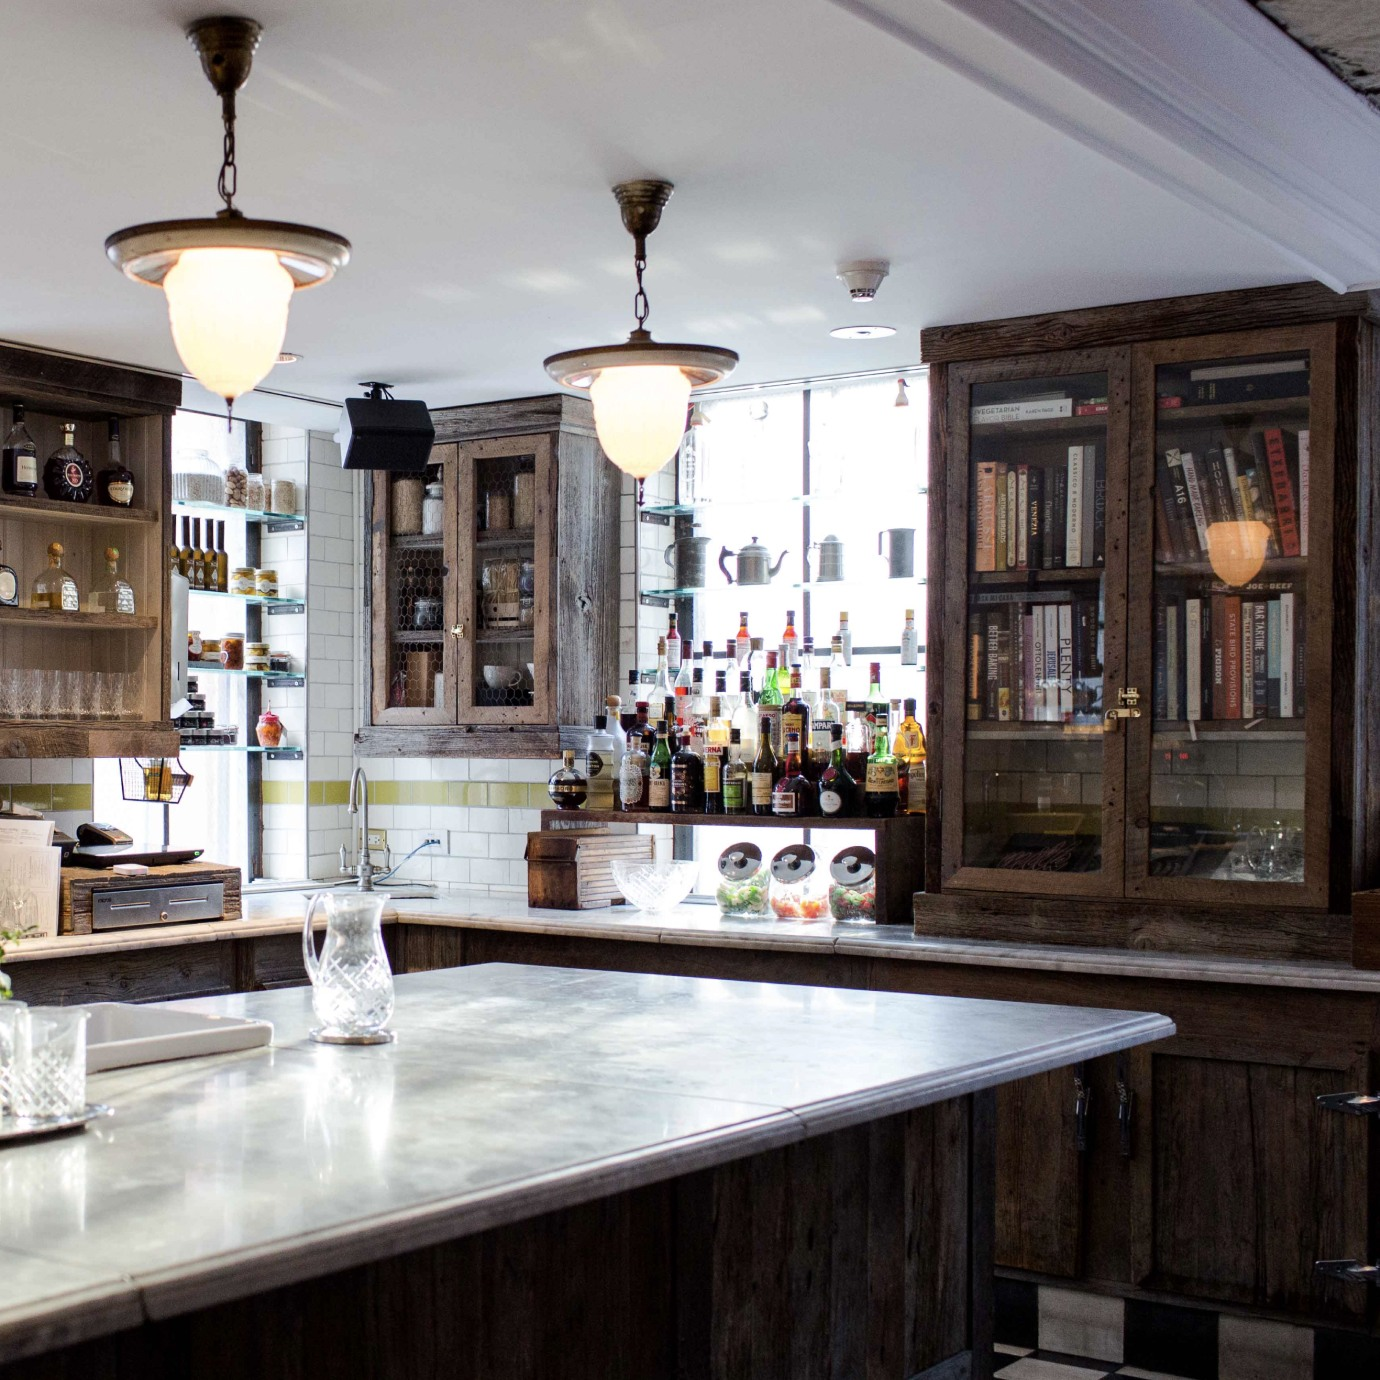 The interior of a pantry type bar with a large serving surface and cupboards on the walls.